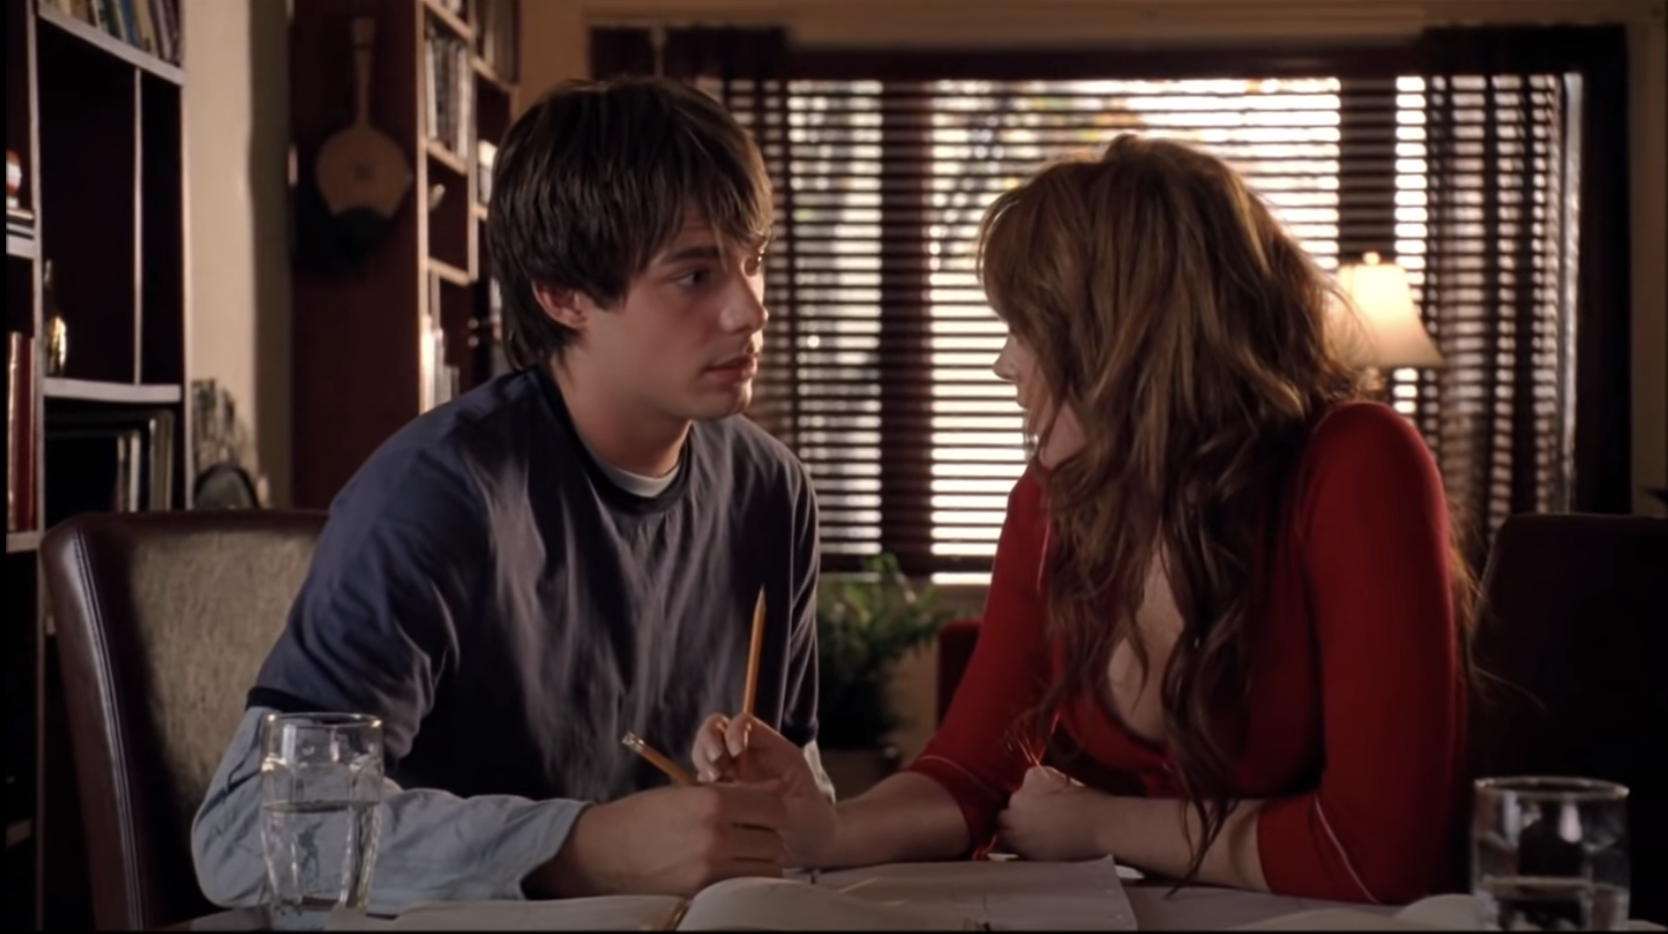 Aaron and Cady in Mean Girls